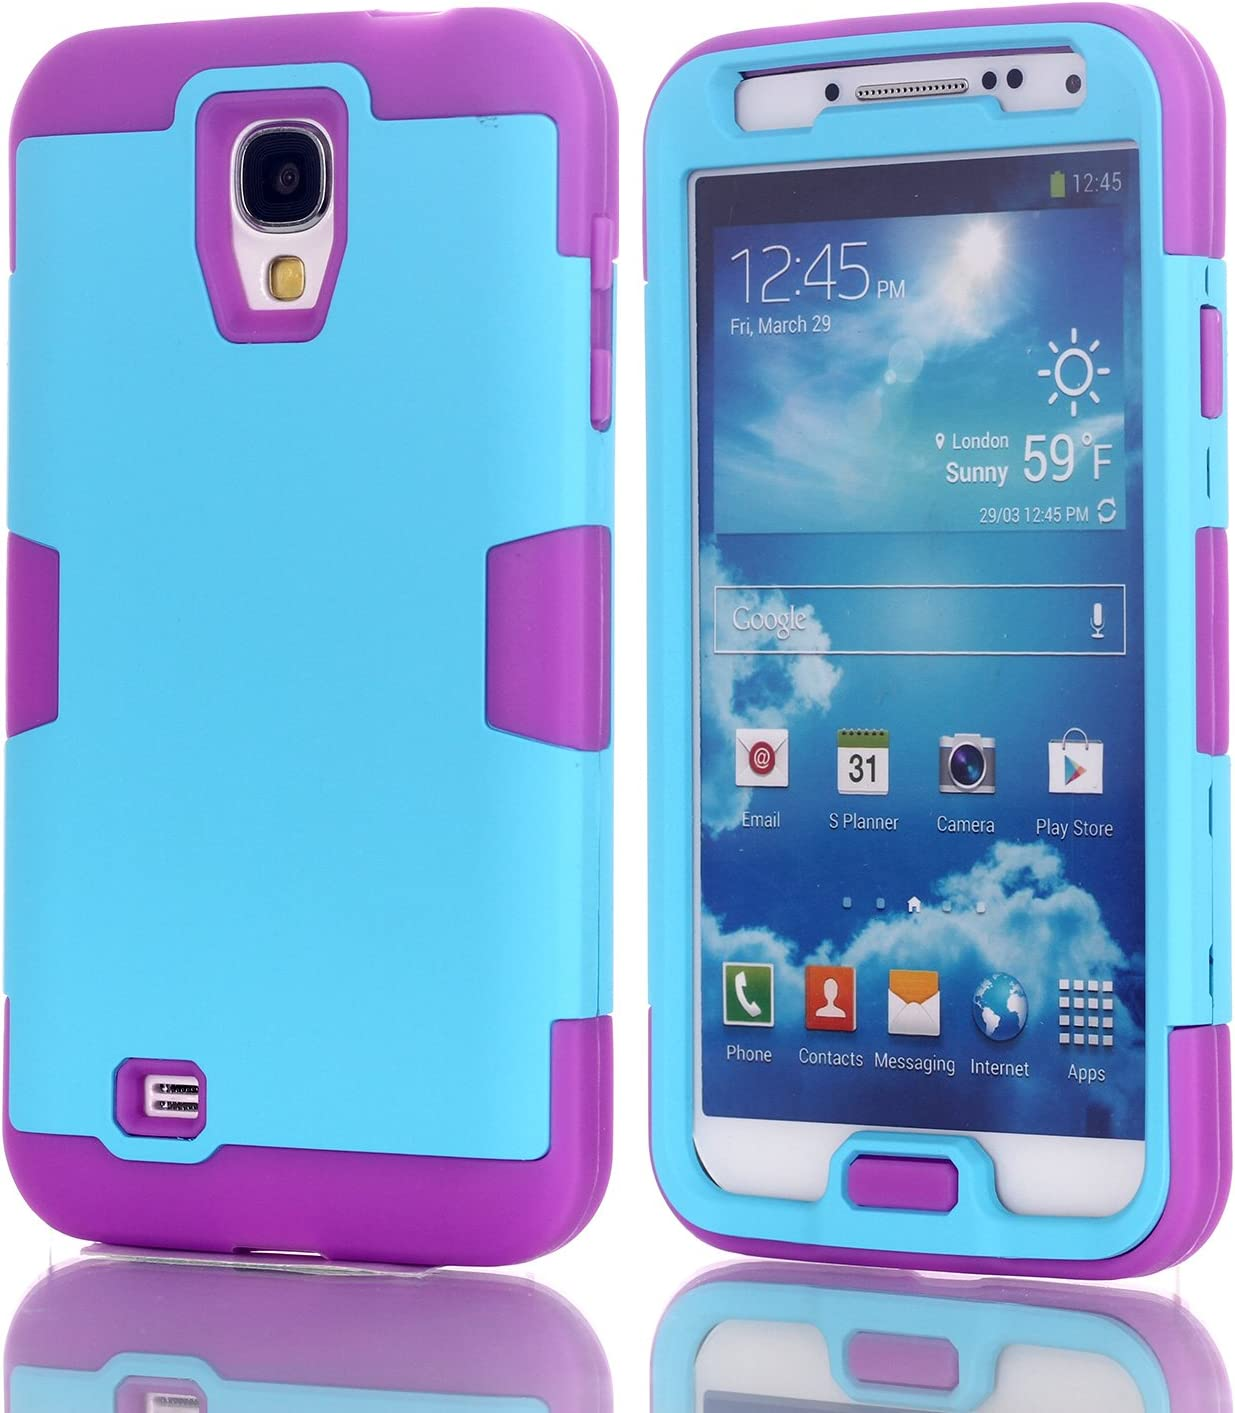 Galaxy S4 Case with Kickstand,Heavy Duty 3 Layer Armor Hybrid Shock Absorption Scratch Resistant TPU Grip Skin Silicone Full-Body Protective for Samsung Galaxy S4 Slim Thin Blue